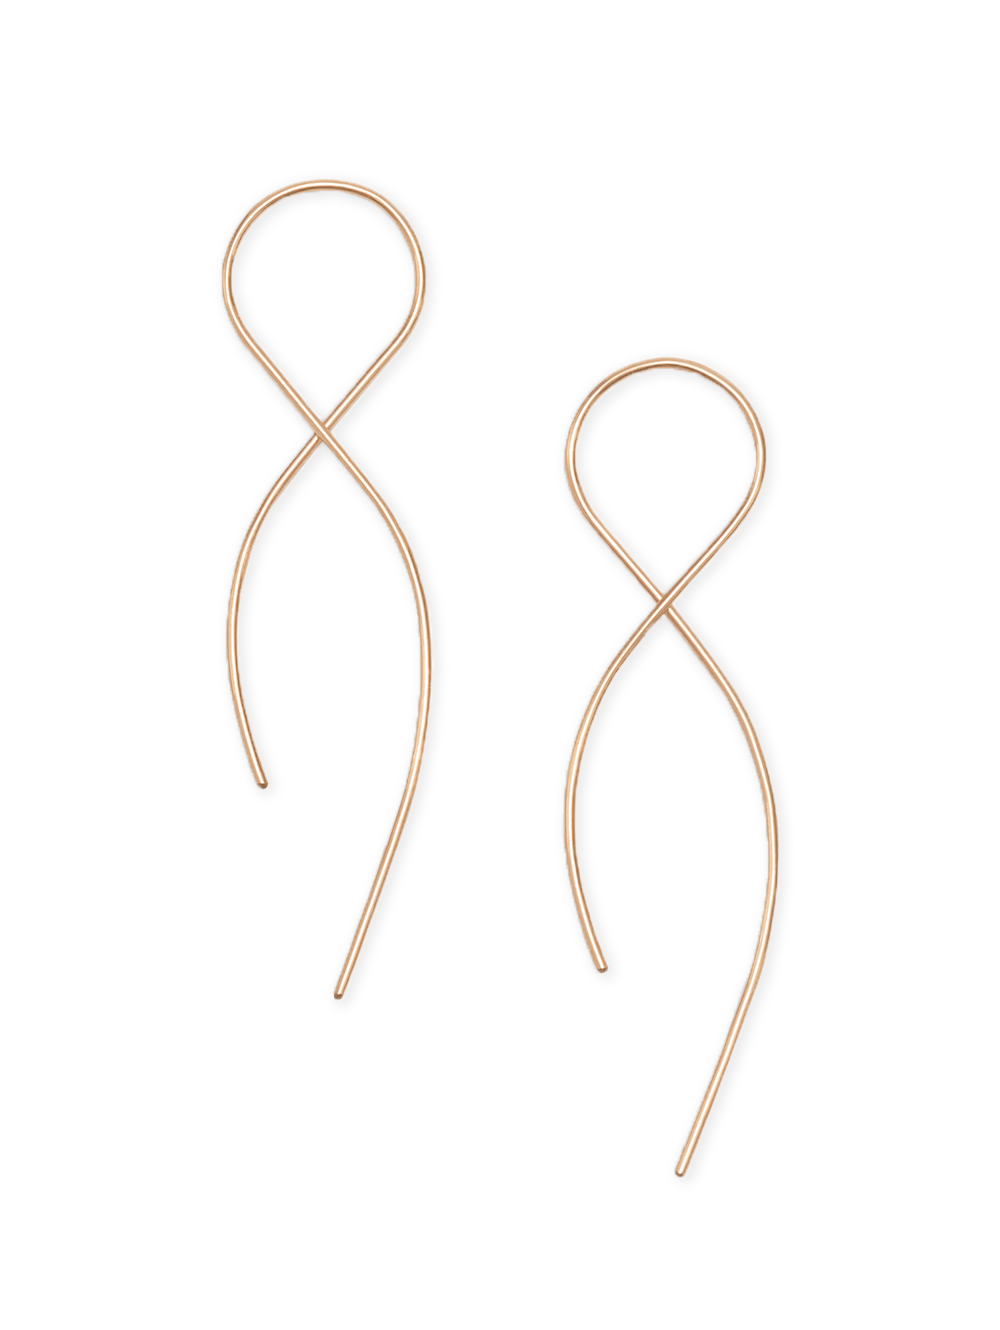 Earrings, Small Infinity 14kt Yellow Gold Filled.